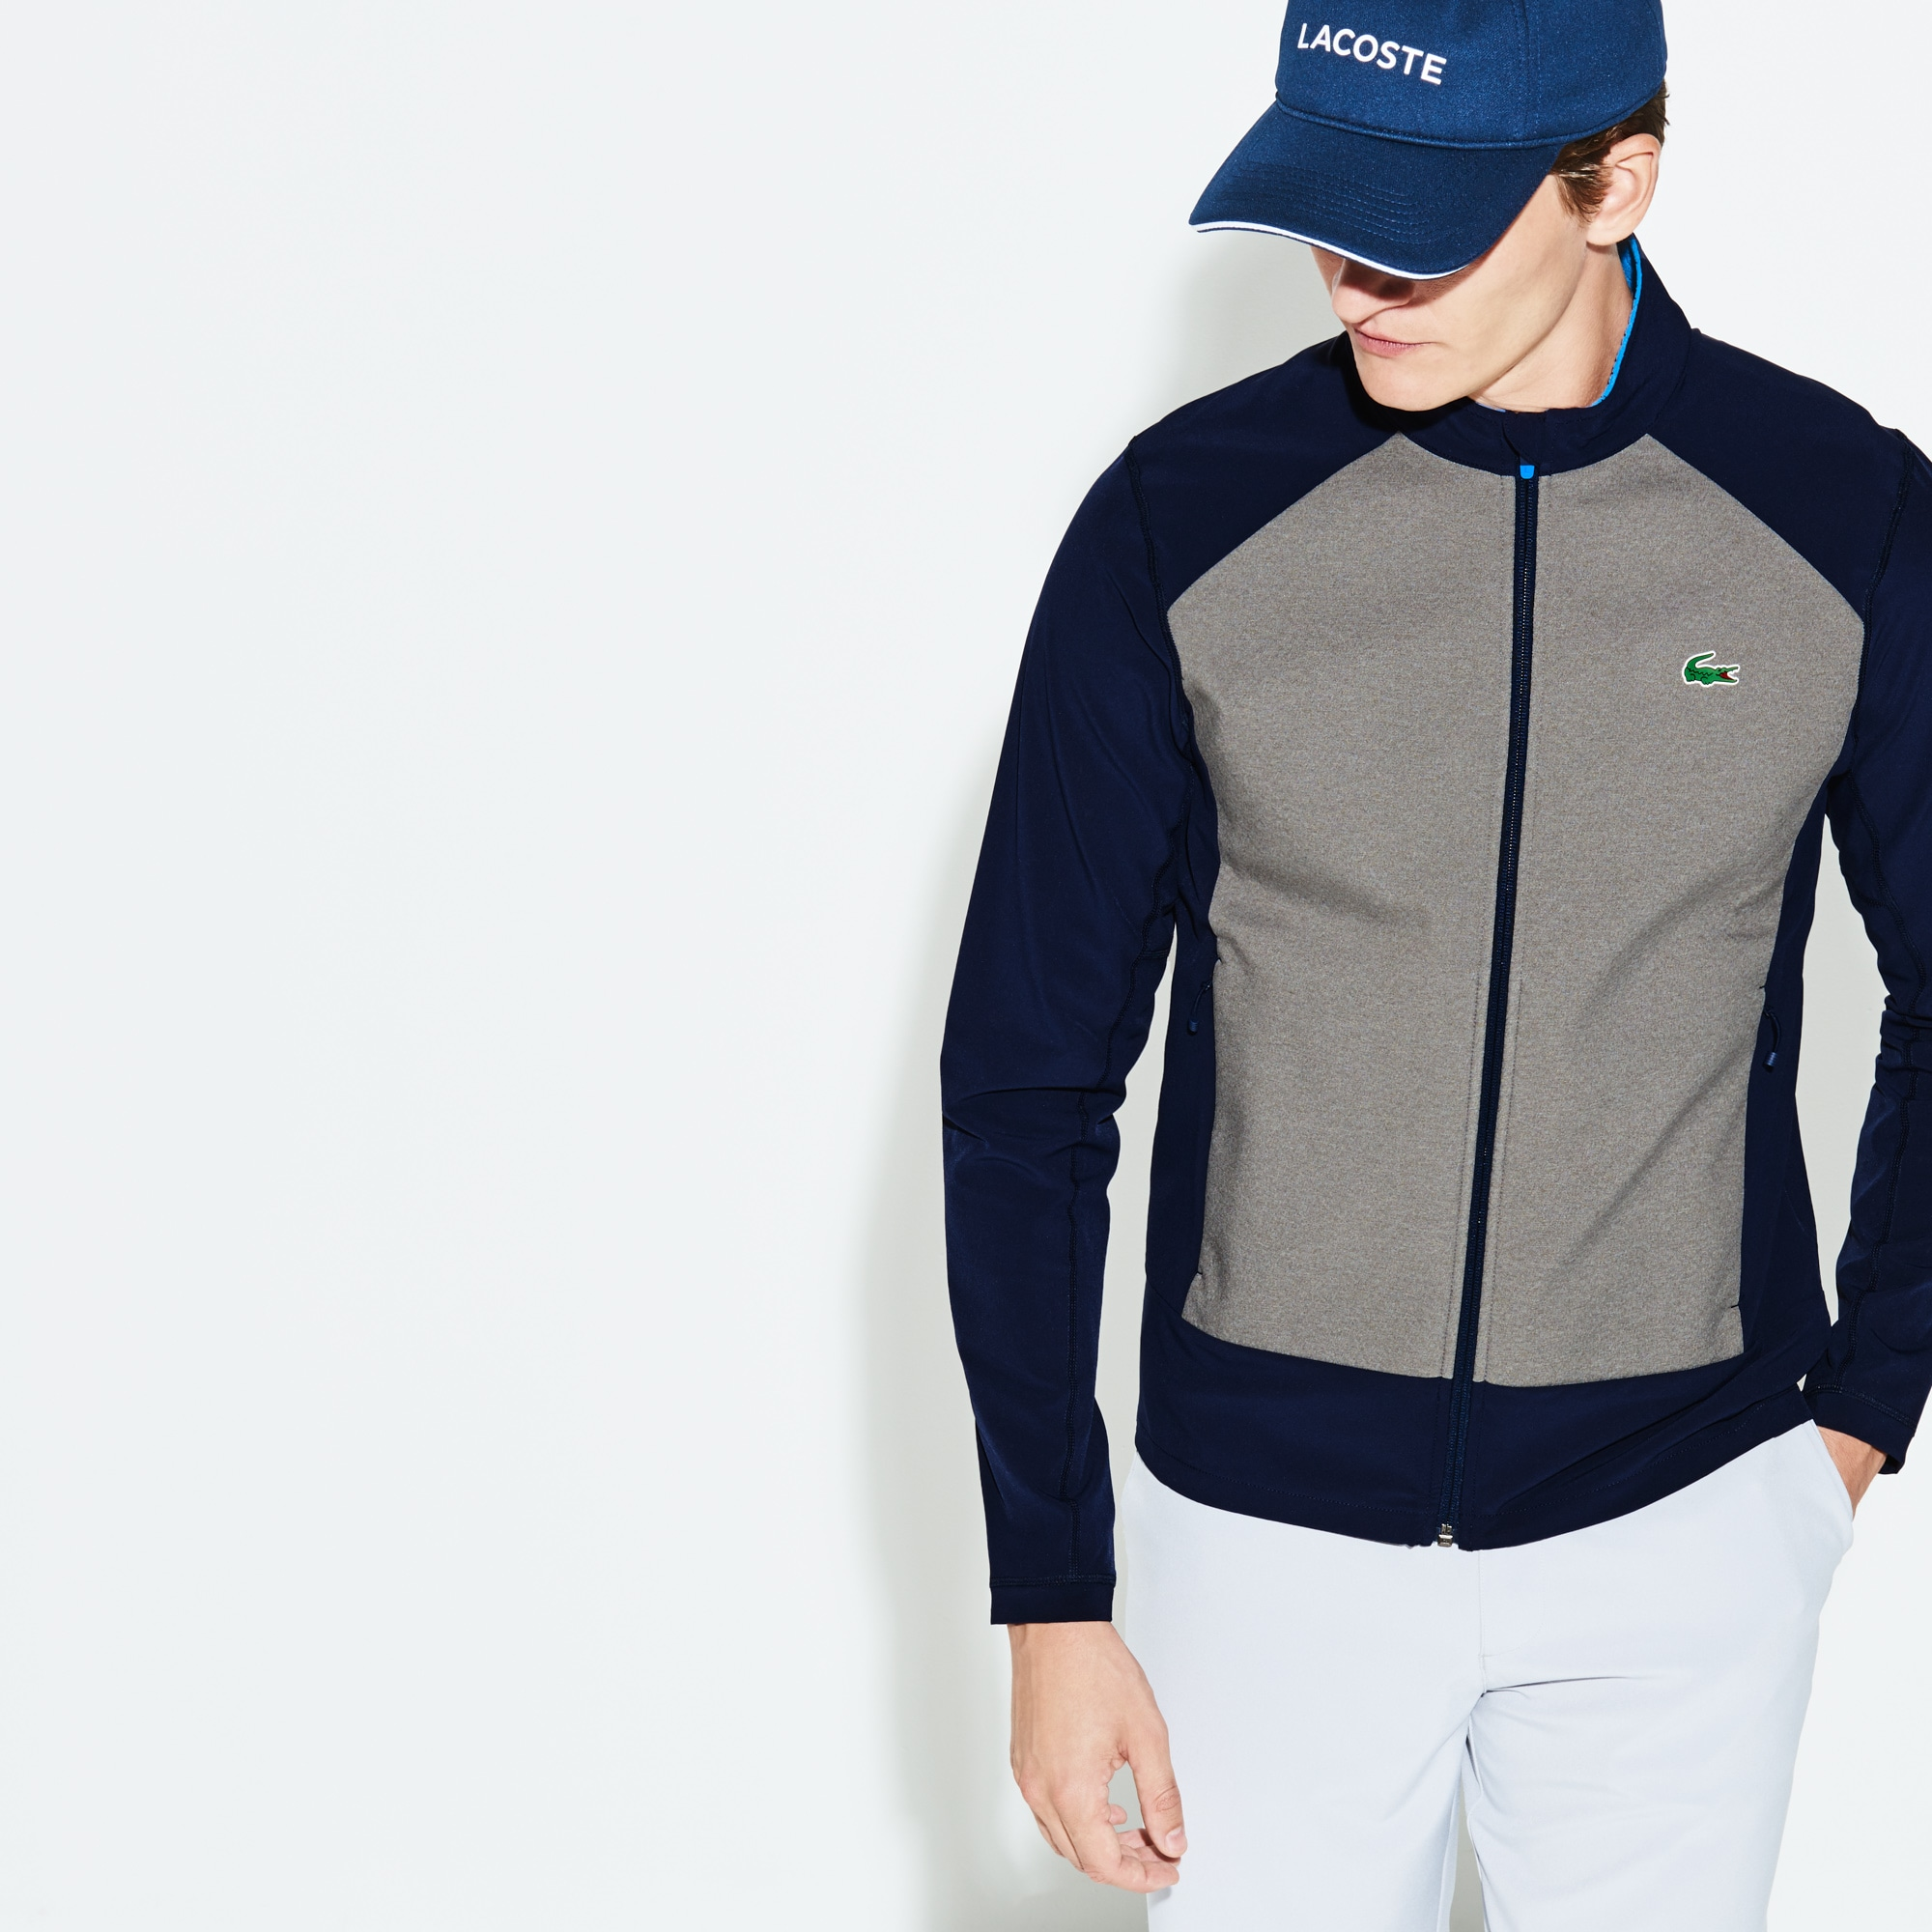 Men's Lacoste SPORT Water-Resistant Zip Golf Sweatshirt